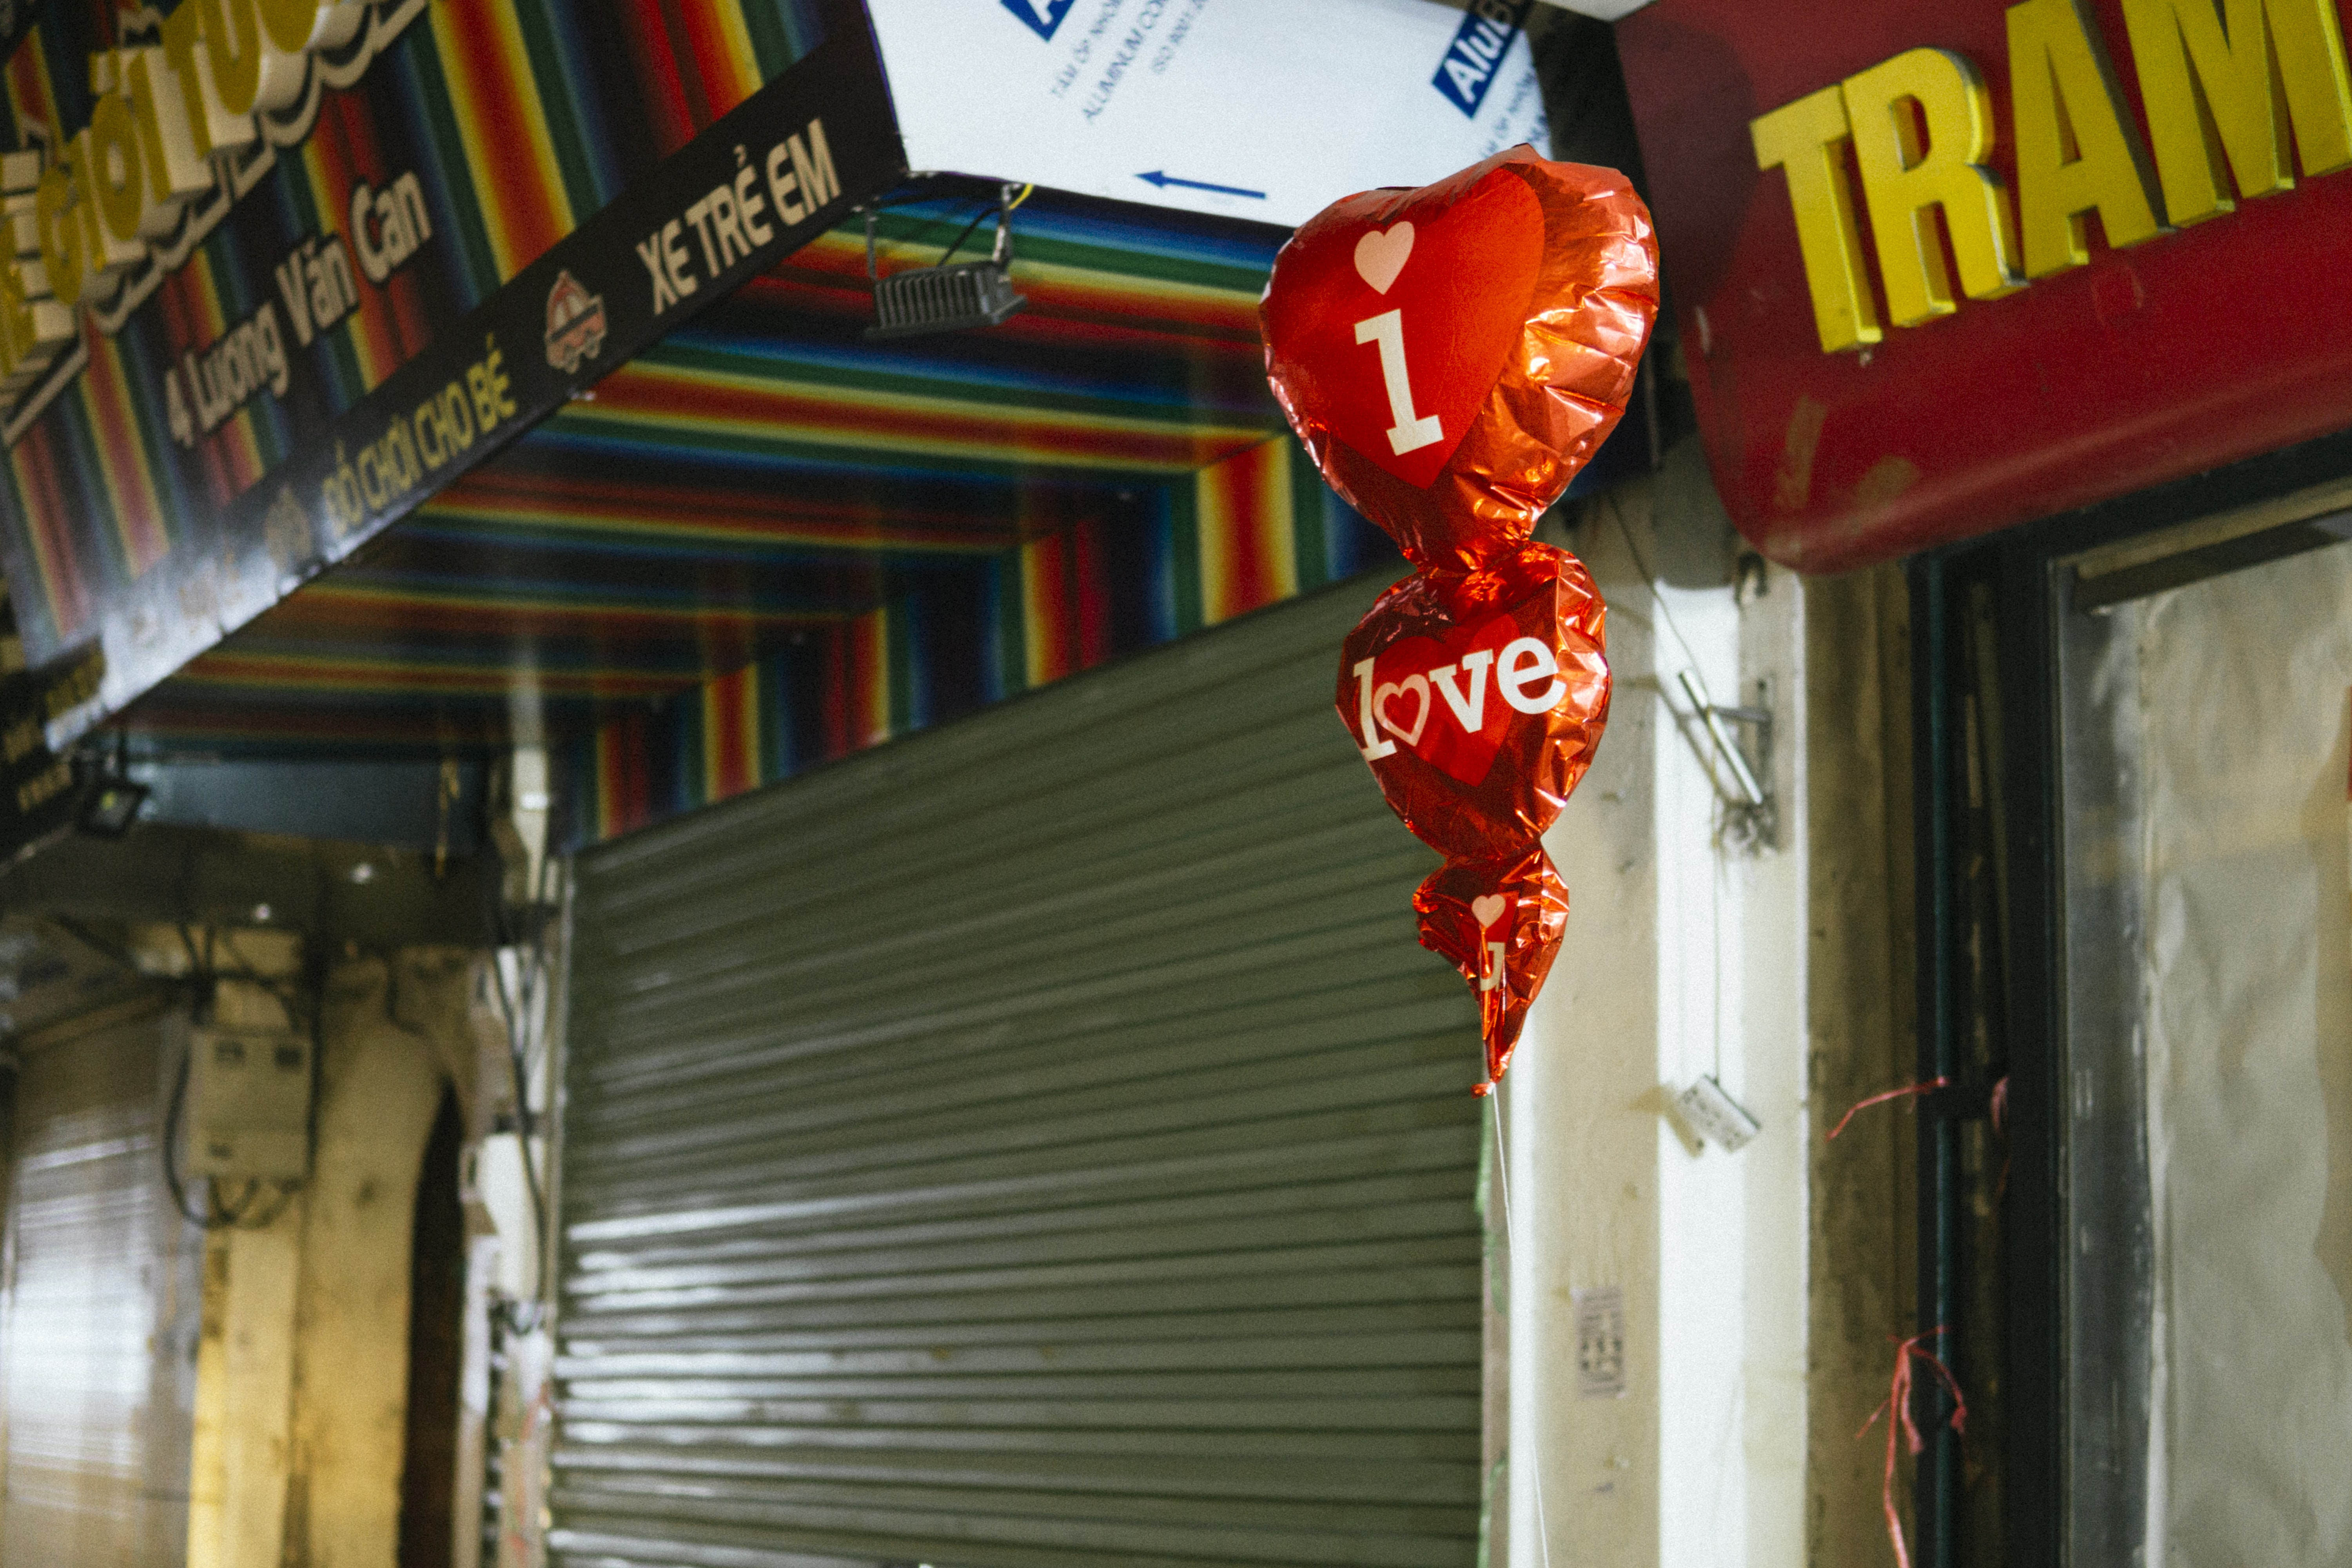 """3 helium balloons near closed businesses read """"I love you,"""" but one has deflated."""